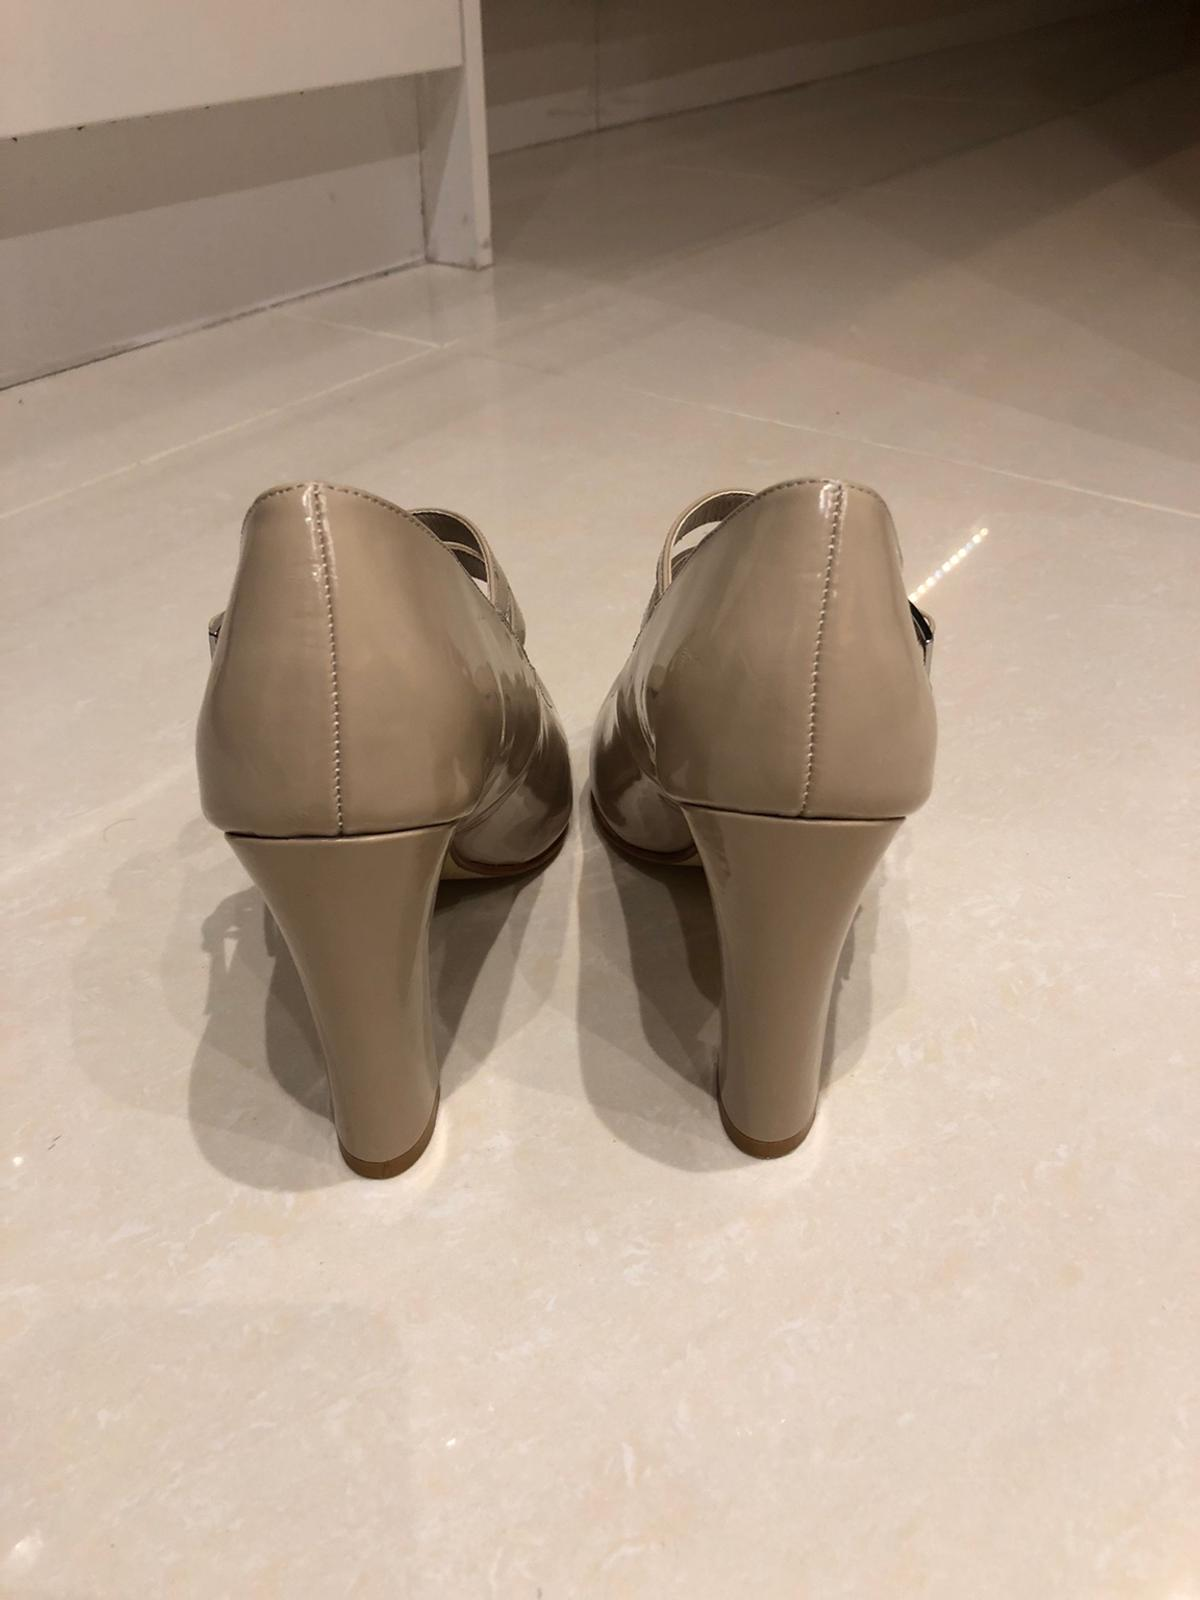 Lovely court shoes from Next in natural colour. Size UK 4.5 / EU 37.5 Worn for one evening a while ago and they don't fit my post babies/pregnancies feet anymore 🙈😄  Happy to deliver locally (or post if needed) 😊